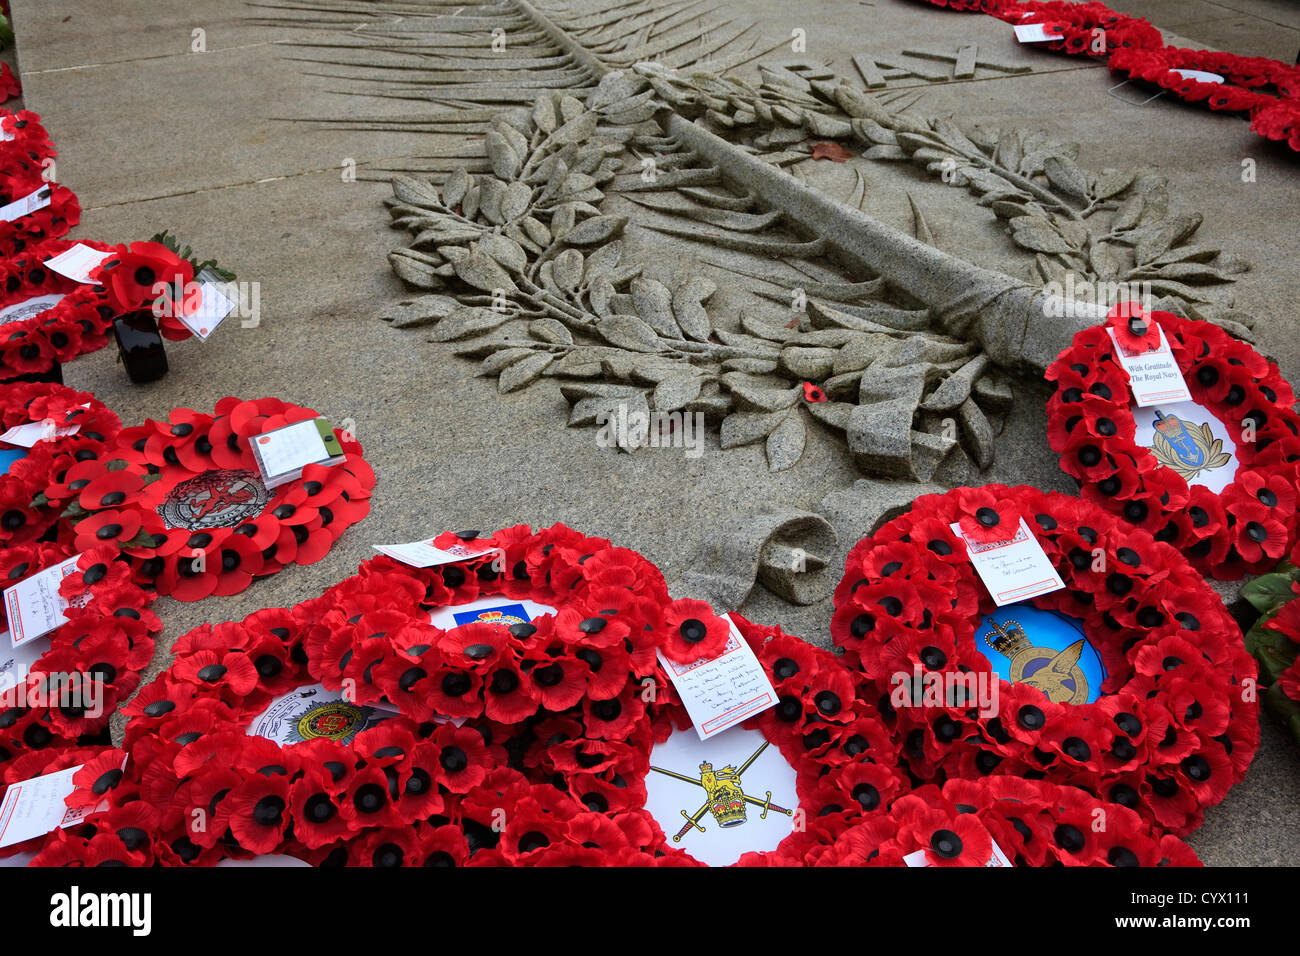 11 November 2012, Remembrance Day Parade, George Square, Glasgow, Scotland. Poppy wreathes placed on the granite - Stock Image